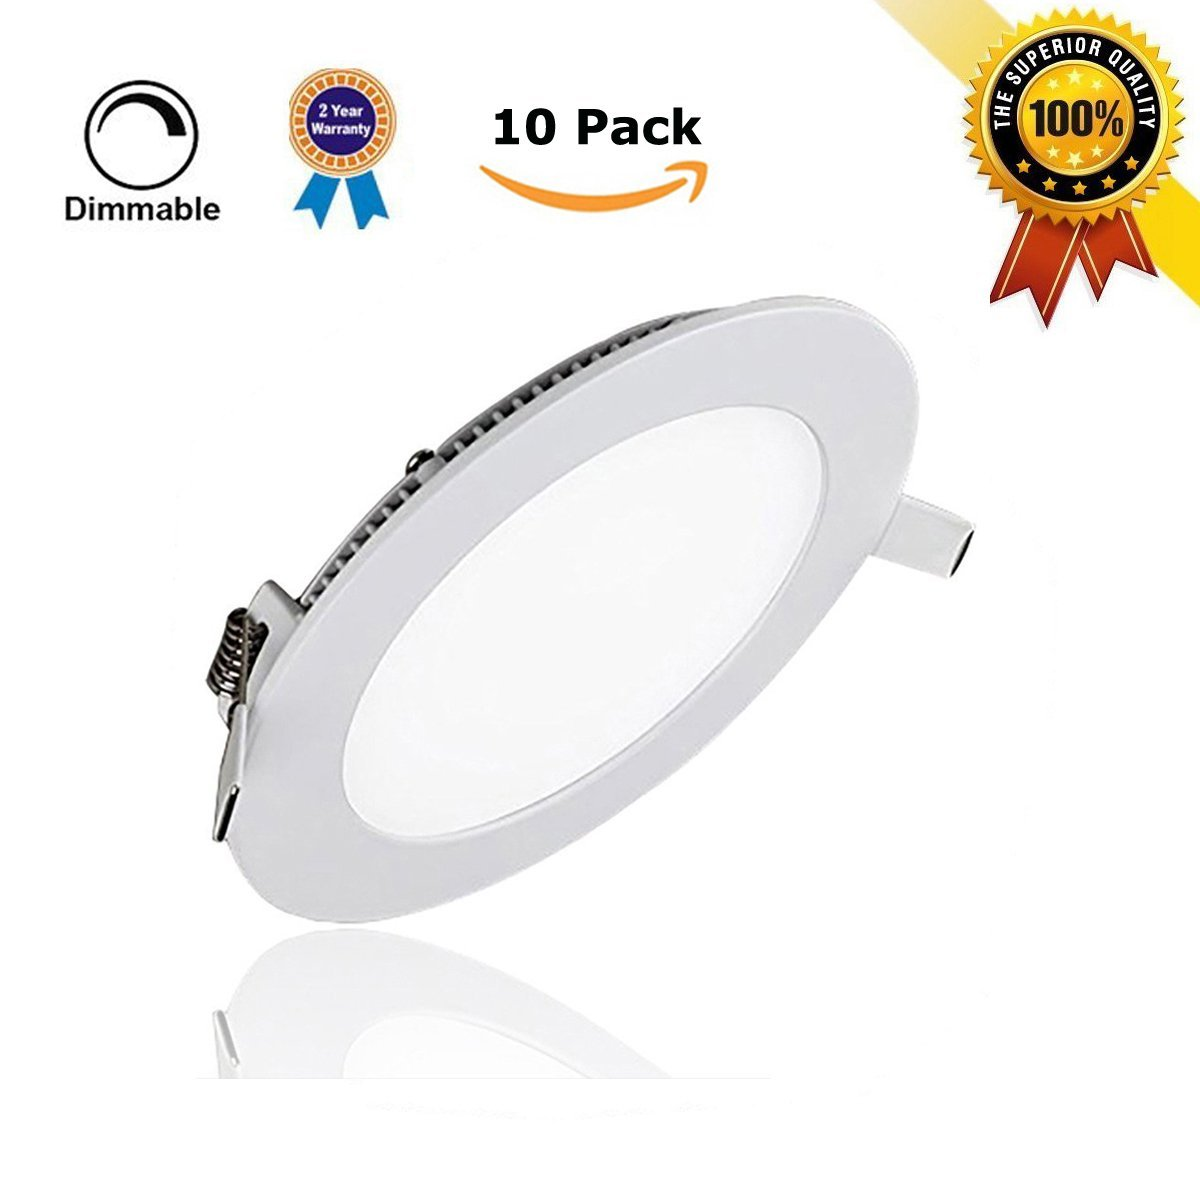 10 Pack 6W Flat LED Panel Light Lamp, szwintec Dimmable Round Ultrathin LED Recessed Downlight, 480LM, Cool White 5000K, Cut Hole 4.1 Inch, Panel Ceiling Lighting with 110V LED Driver